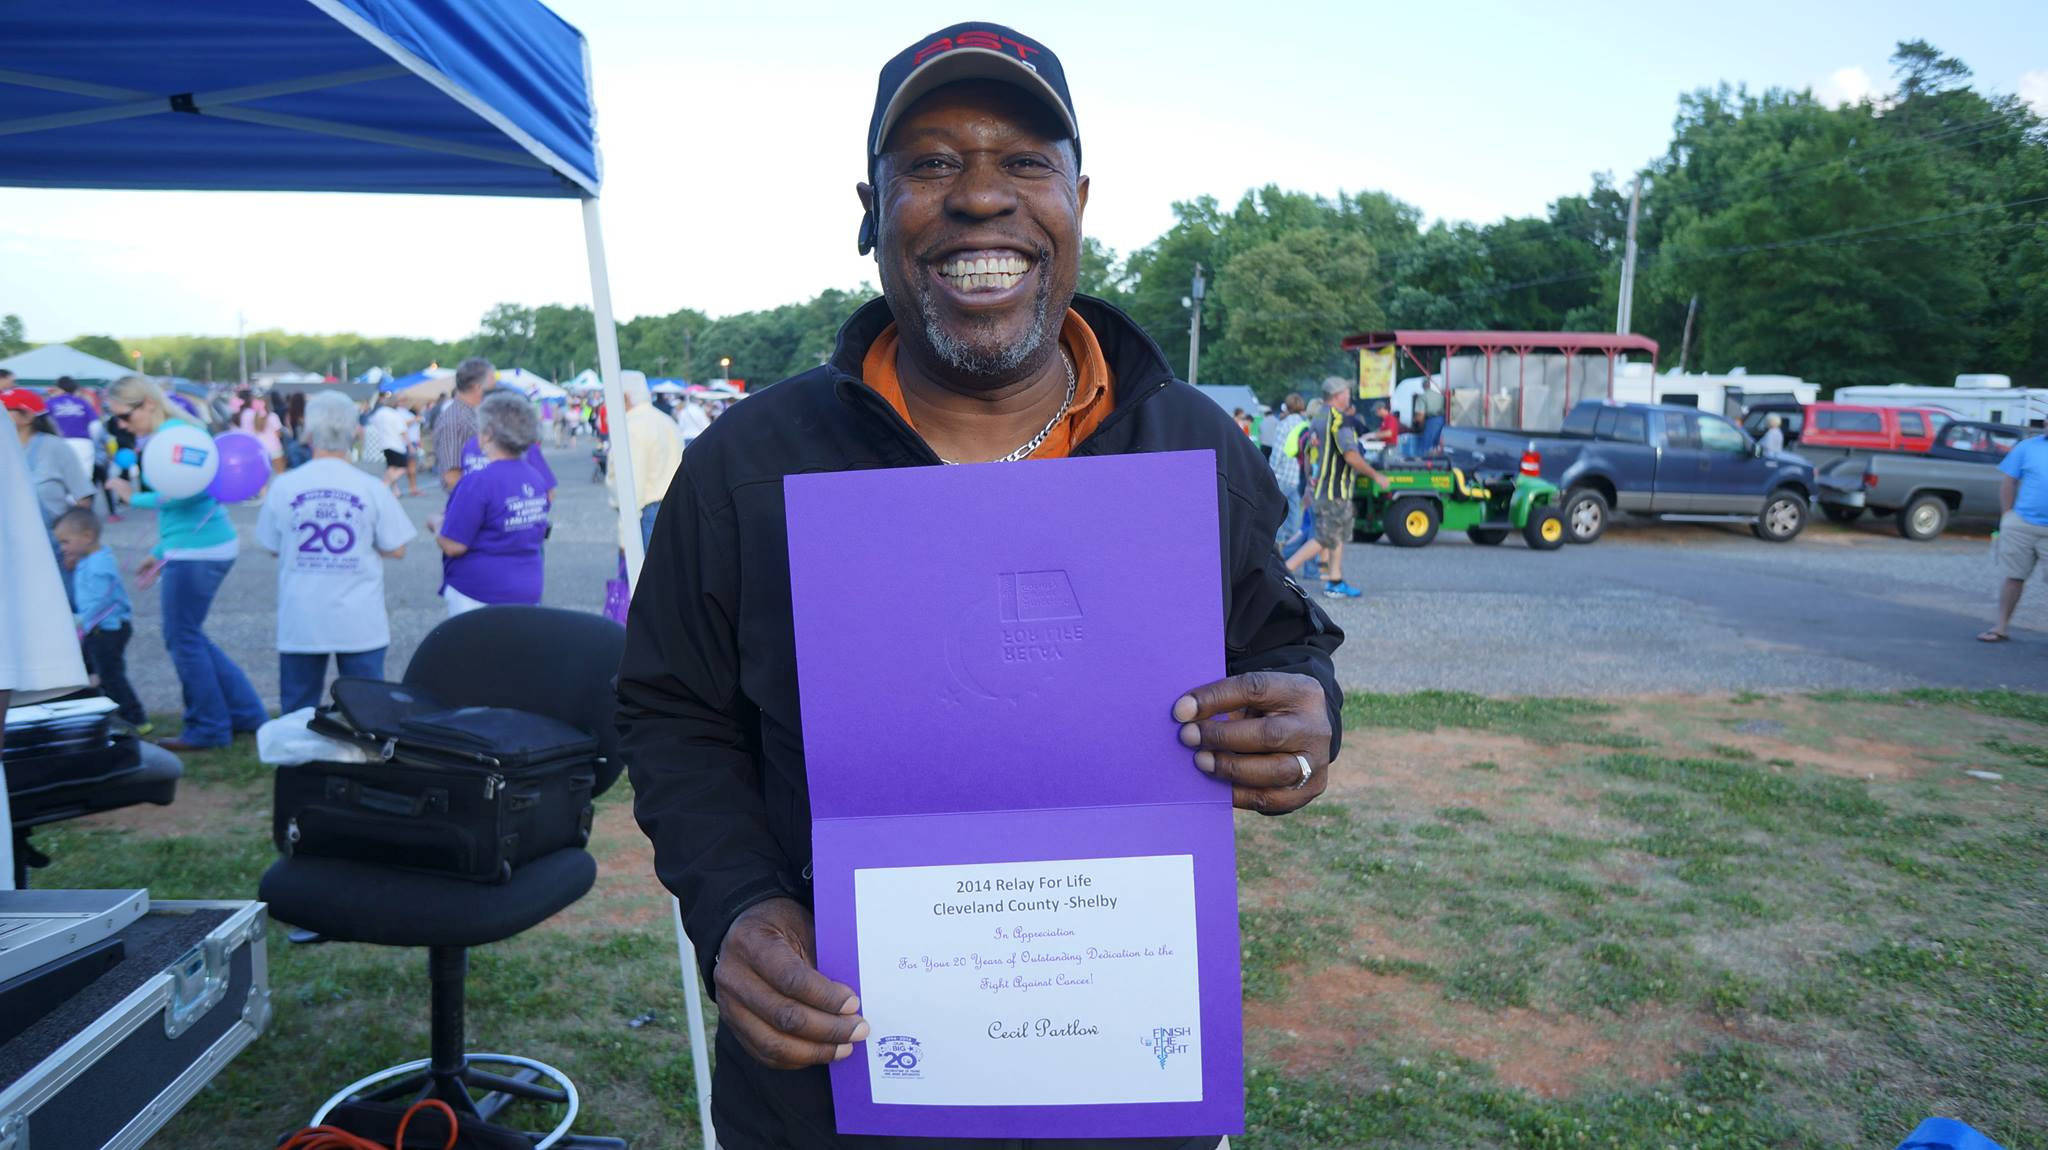 Cecil & Company DJ Services in Shelby, NC at Relay for Life